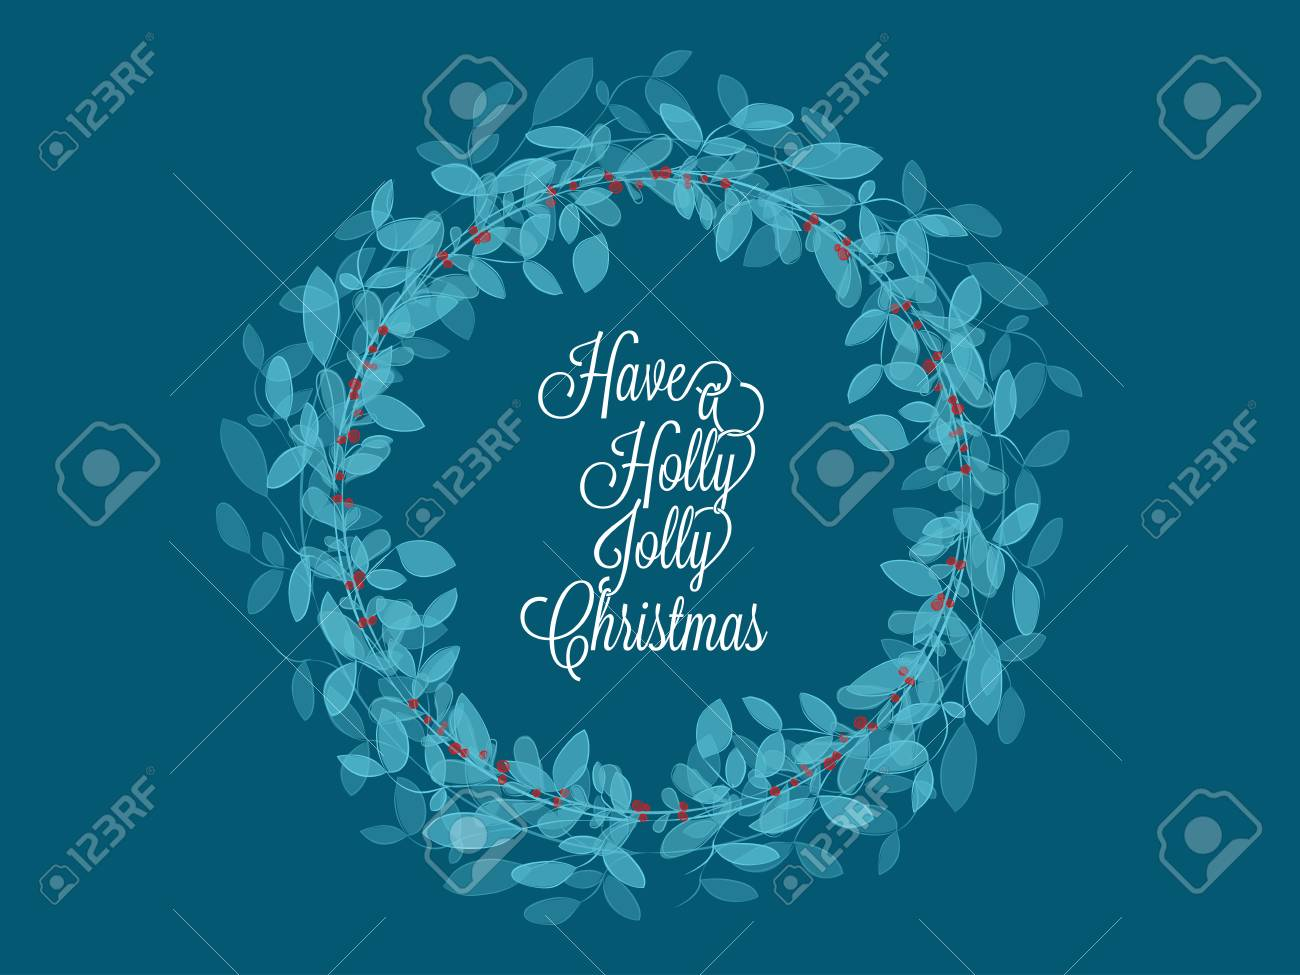 Happy new year greetings card with green leaf and red holly jolly created with watercolor brushes effect Stock Vector - 89284658